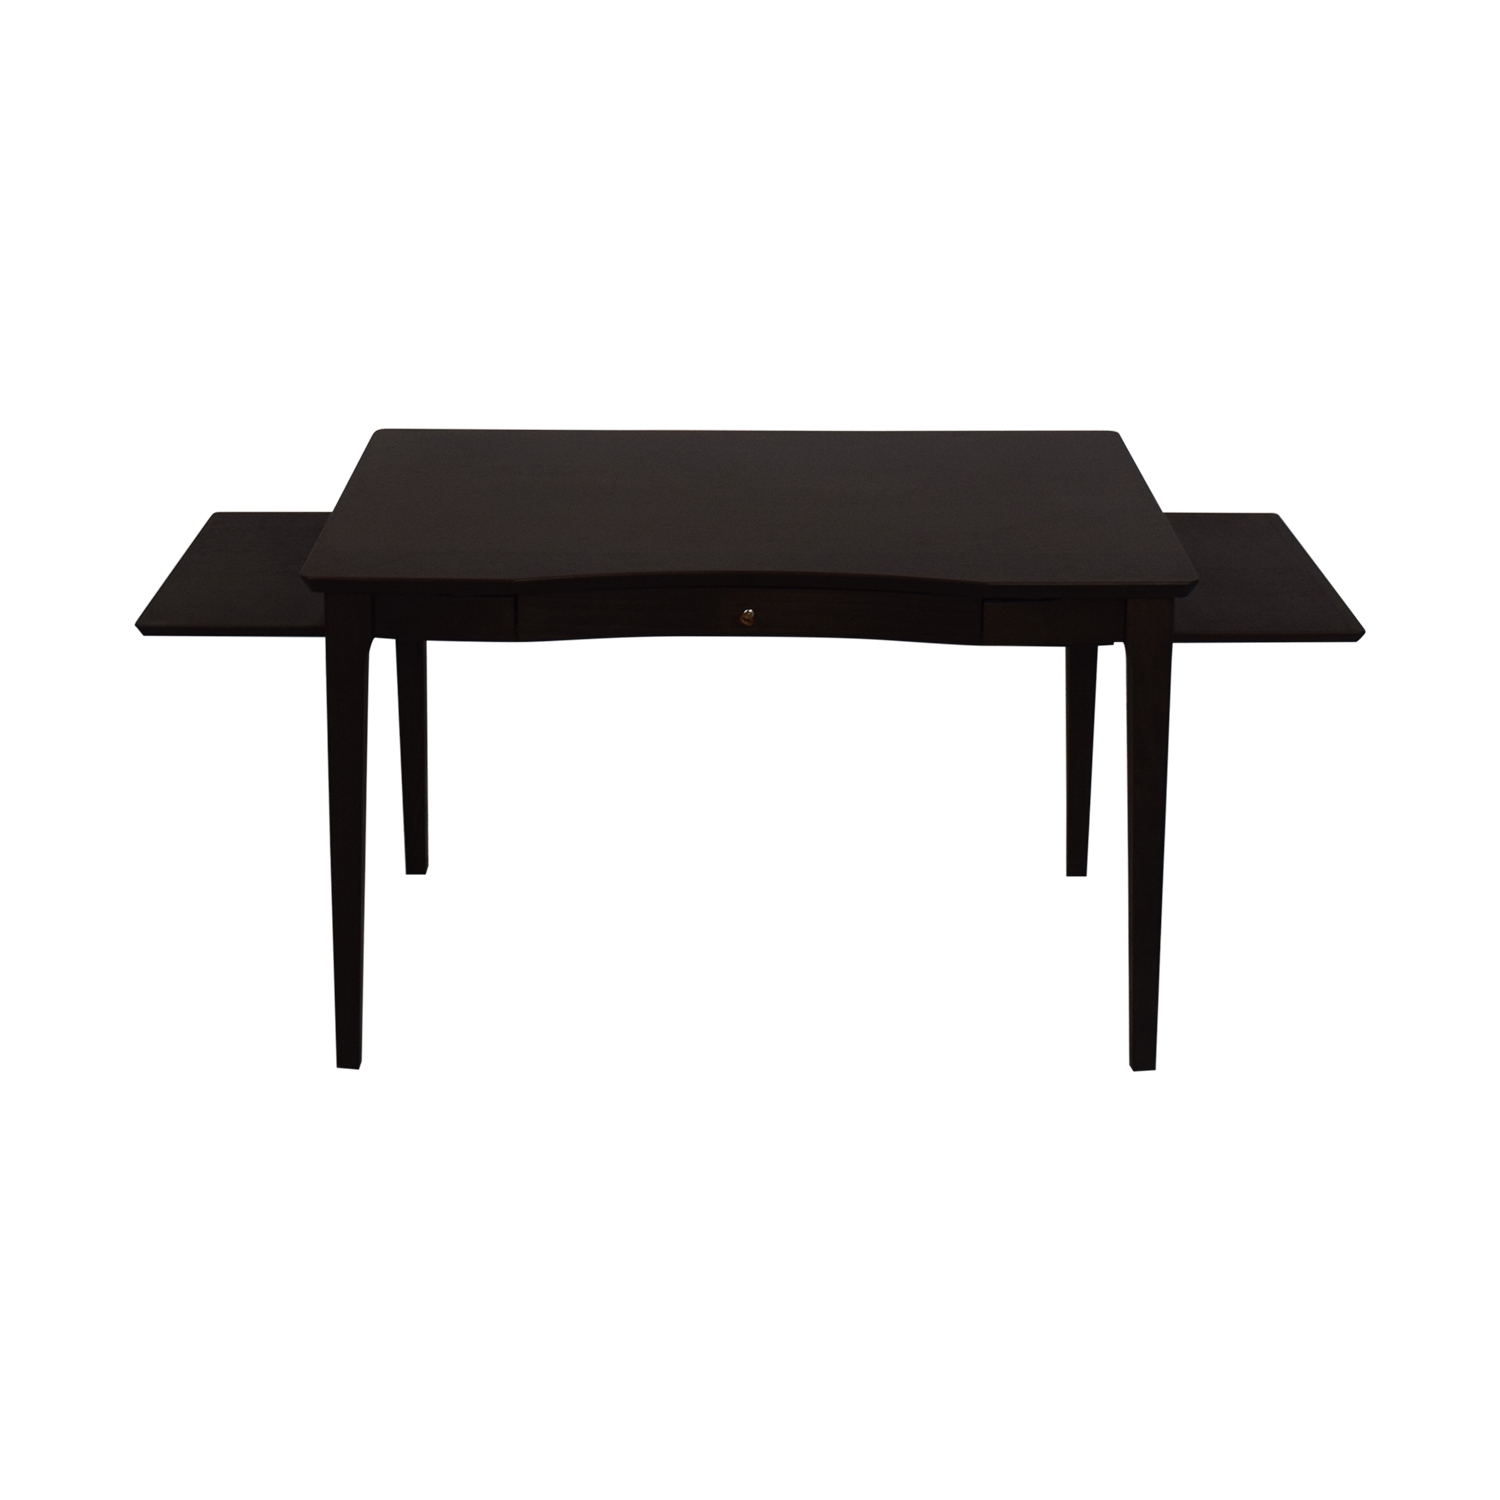 Calligaris Calligaris Modern Extendable Desk Dark Brown